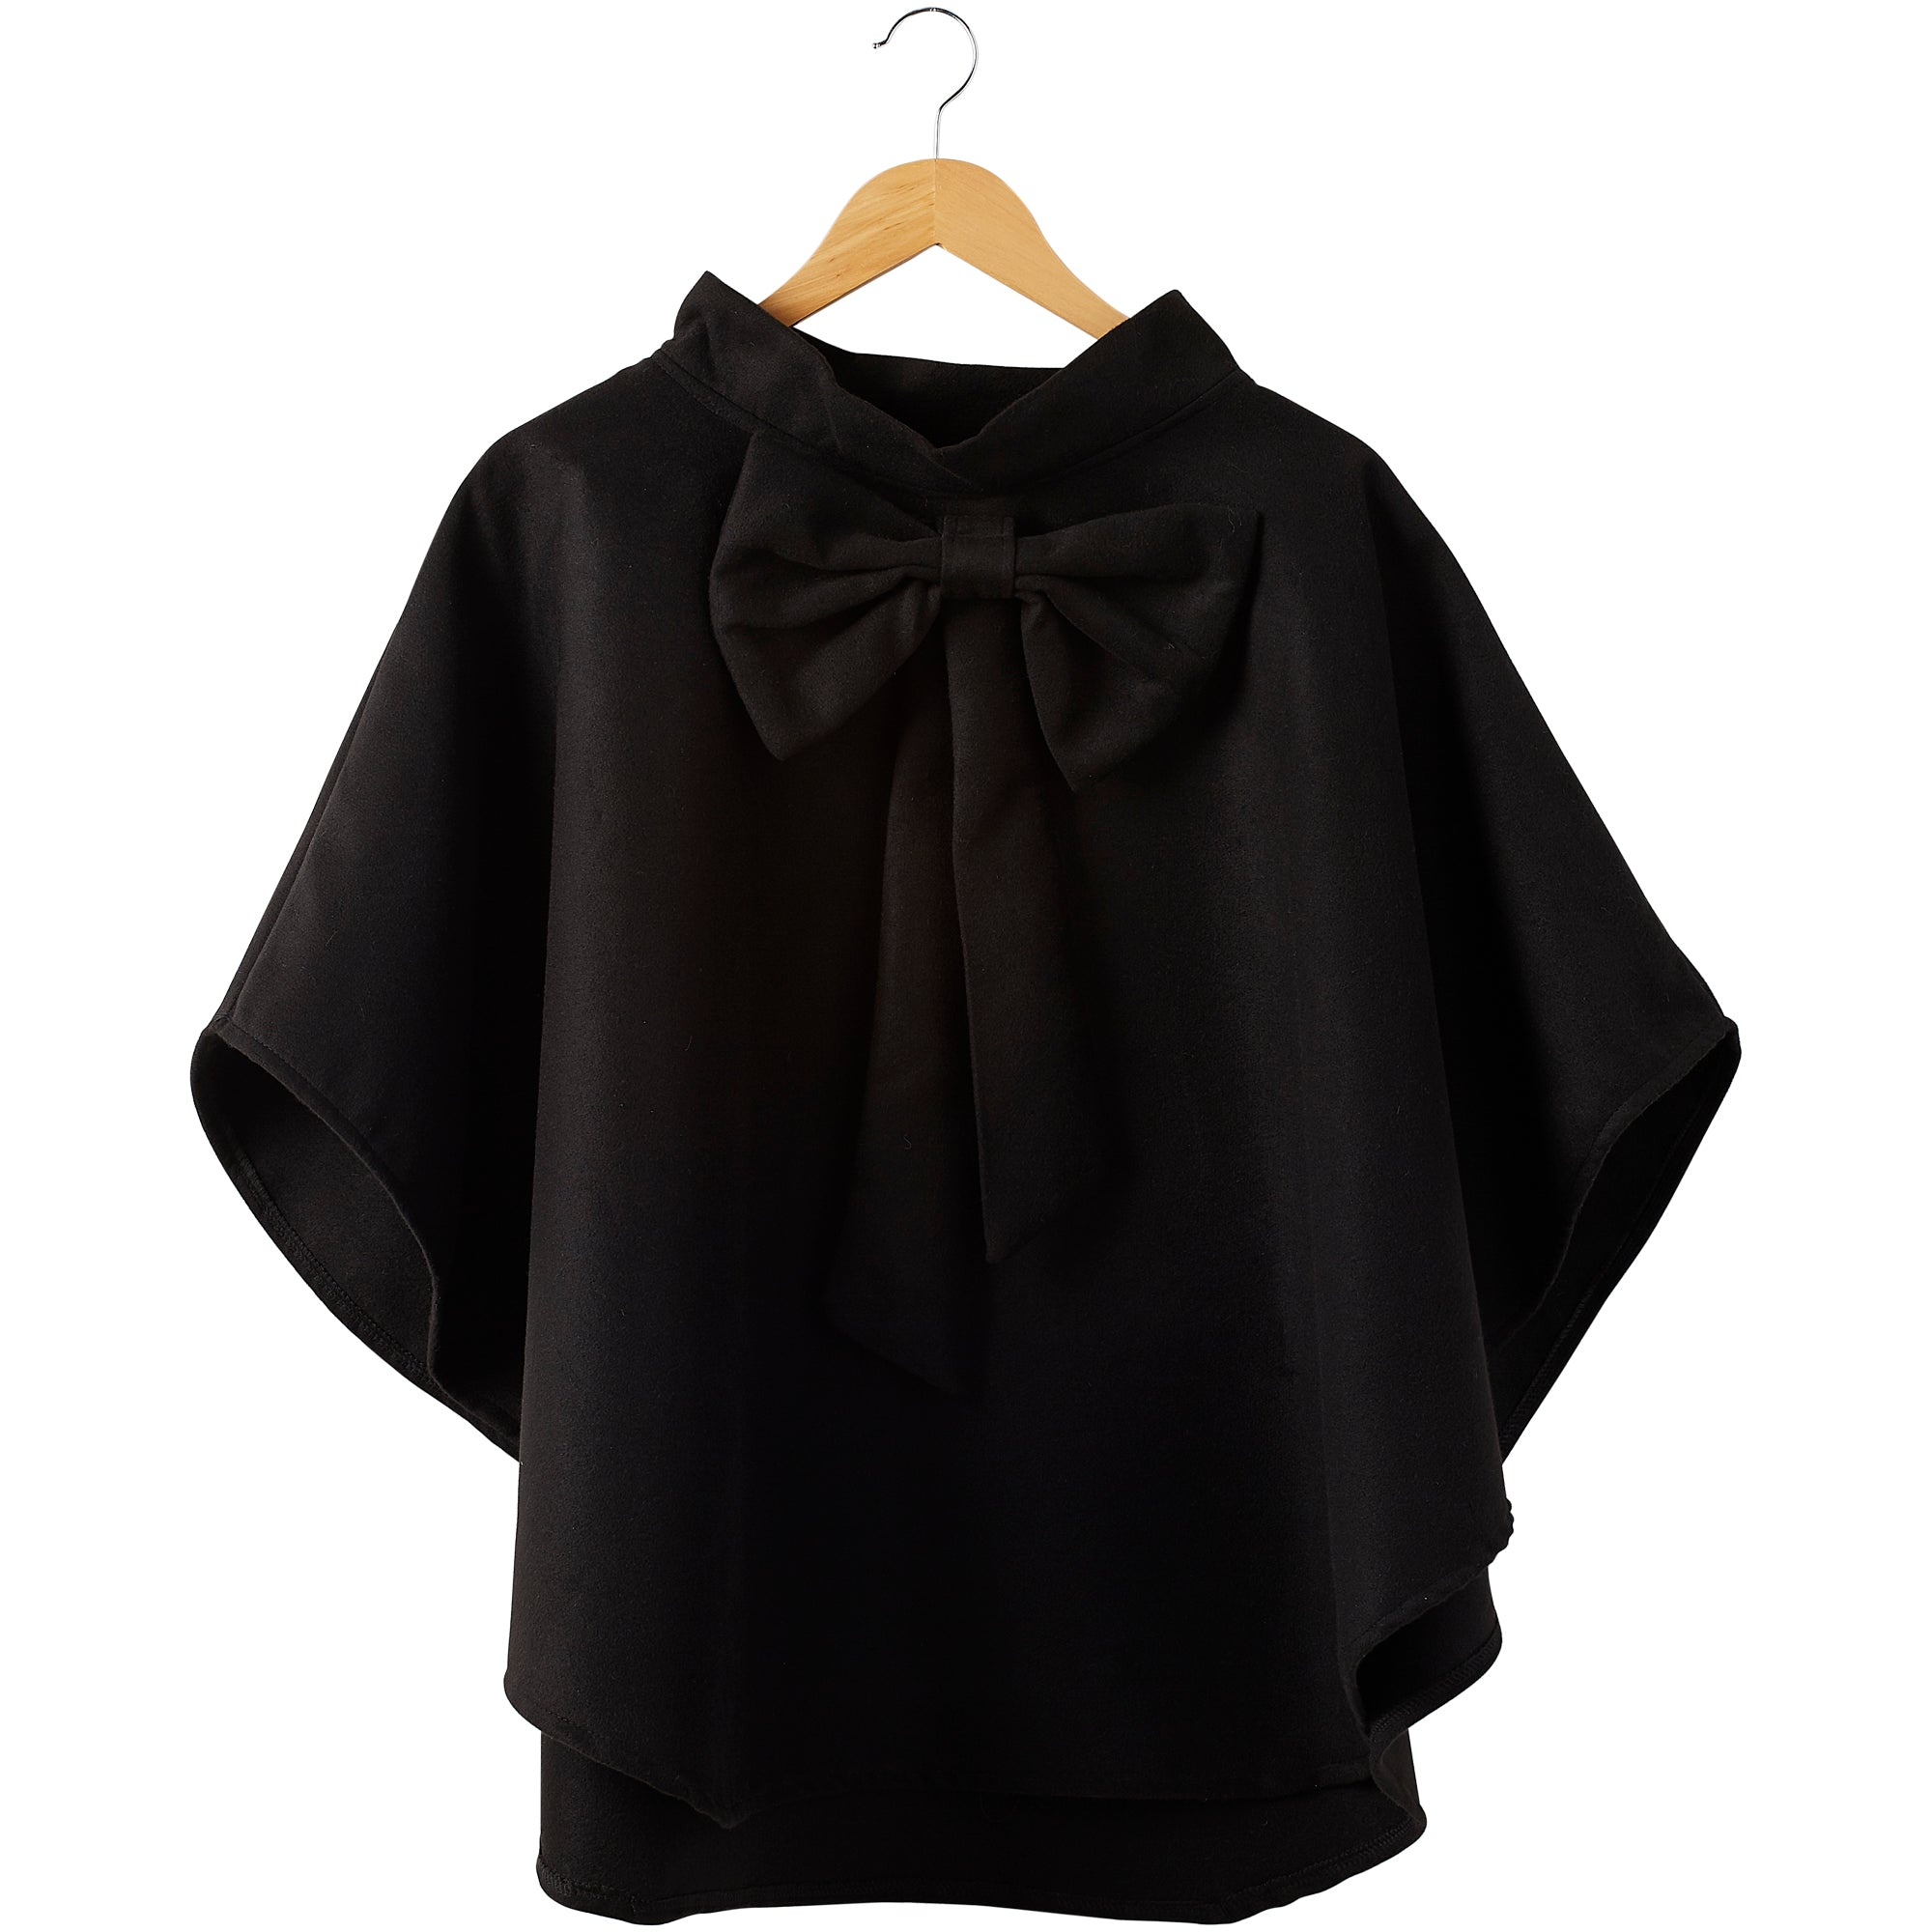 Elsa Bow Cape - Black